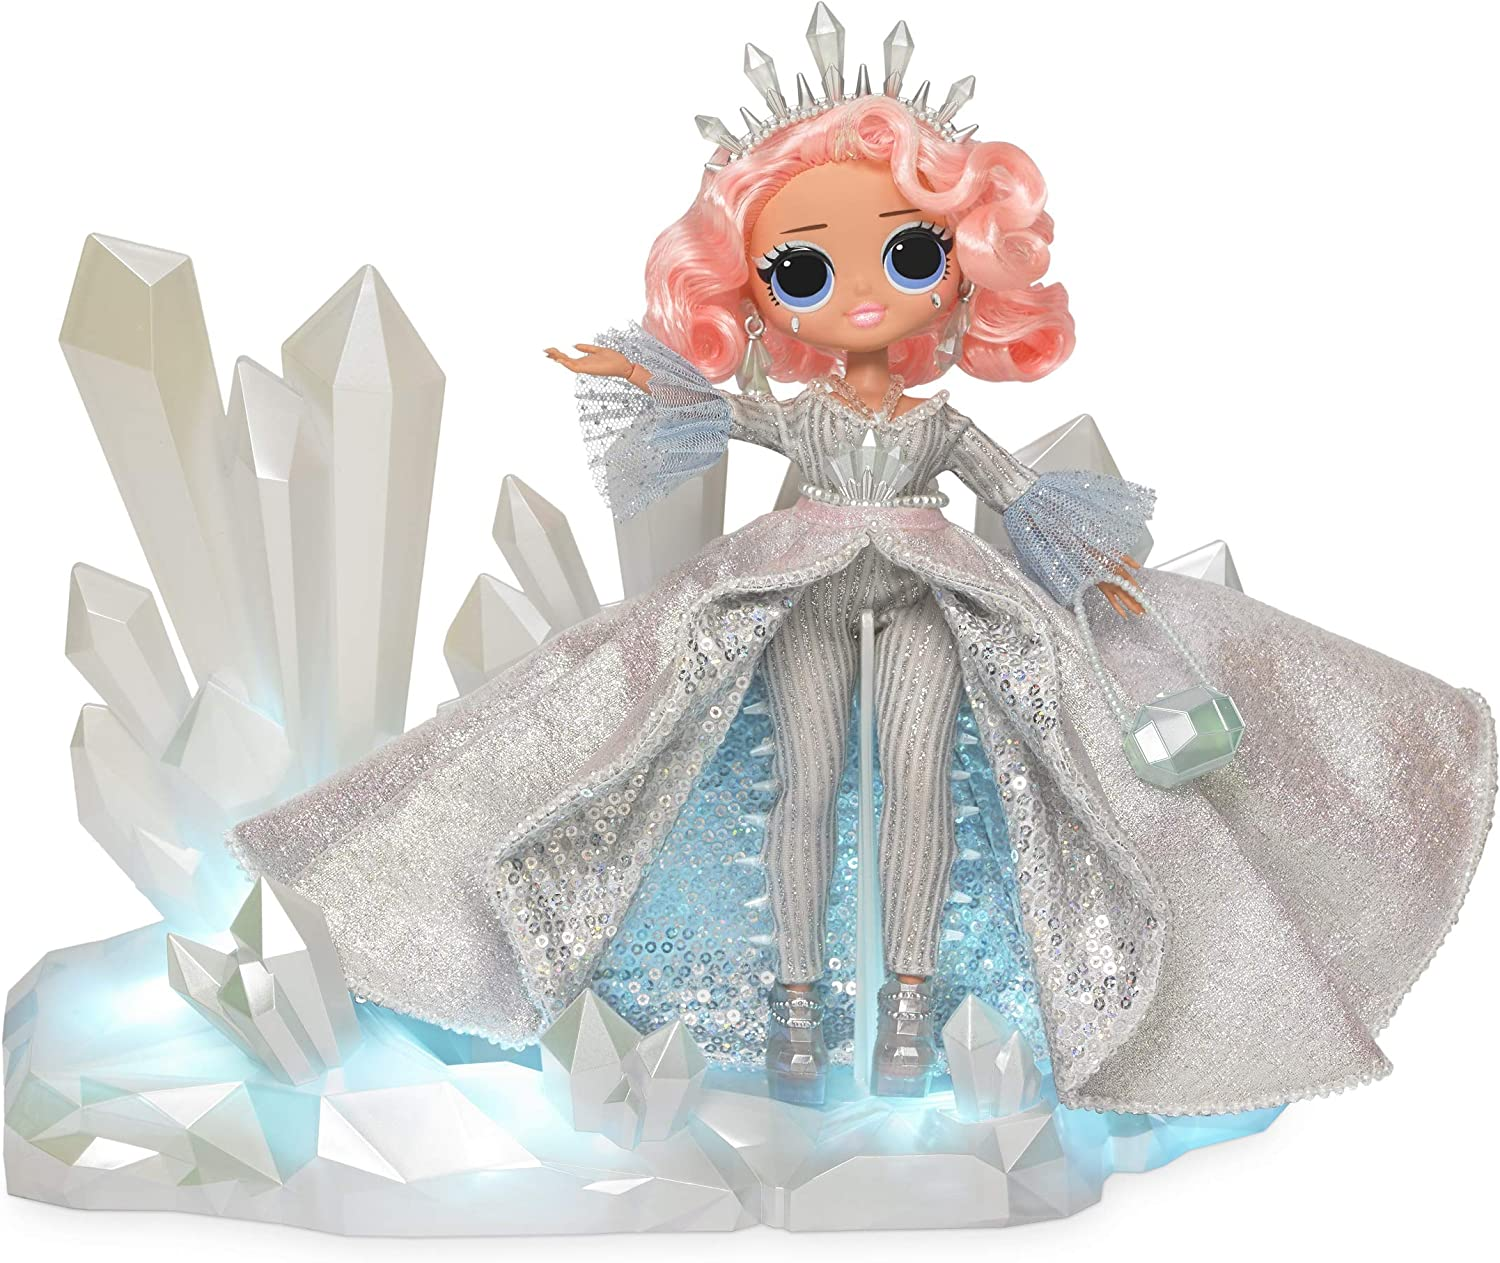 Lol Surprise Omg Crystal Star 2019 Collector Edition Fashion Doll